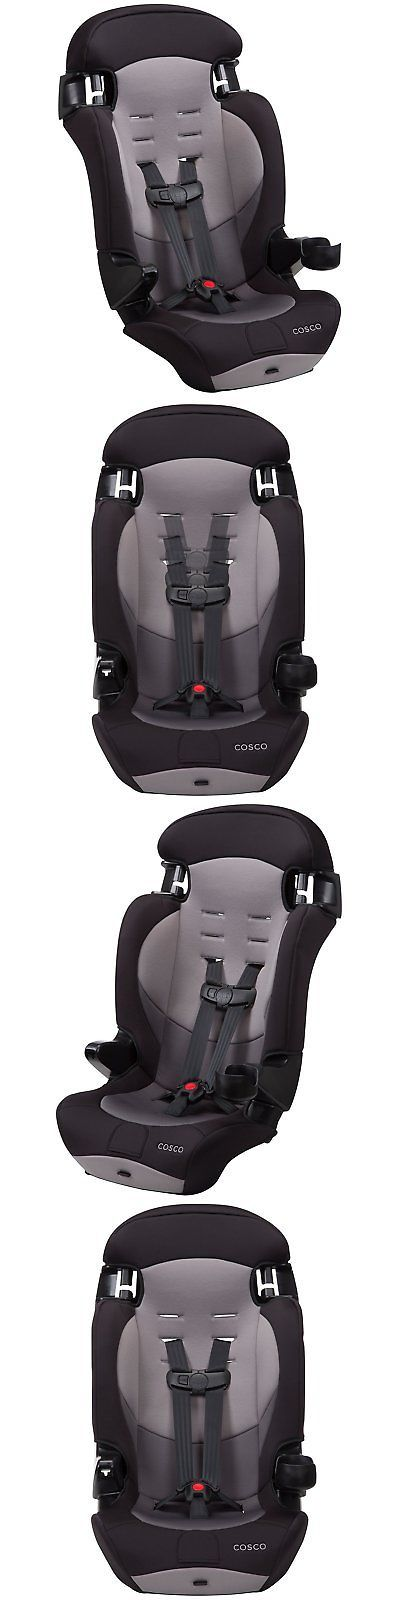 Booster Chairs 134276 Cosco Finale Dx 2 In 1 Forward Facing Highback Child Car Seat Dusk BUY IT NOW ONLY 5999 On EBay